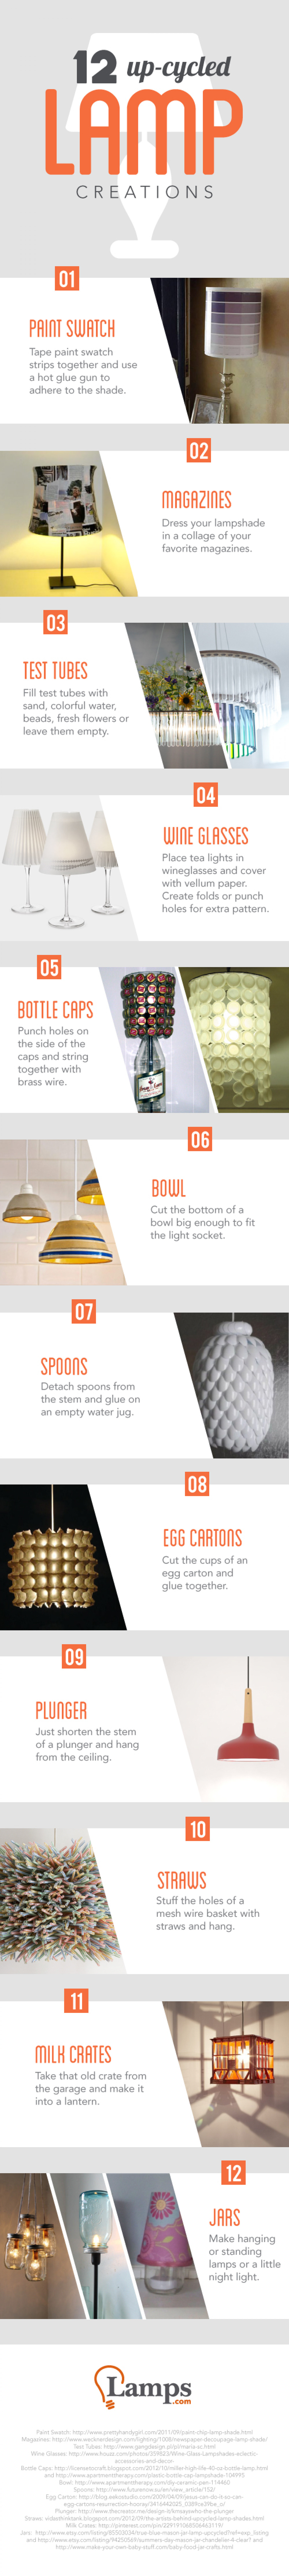 12 Up-Cycled Lamp Creations Infographic